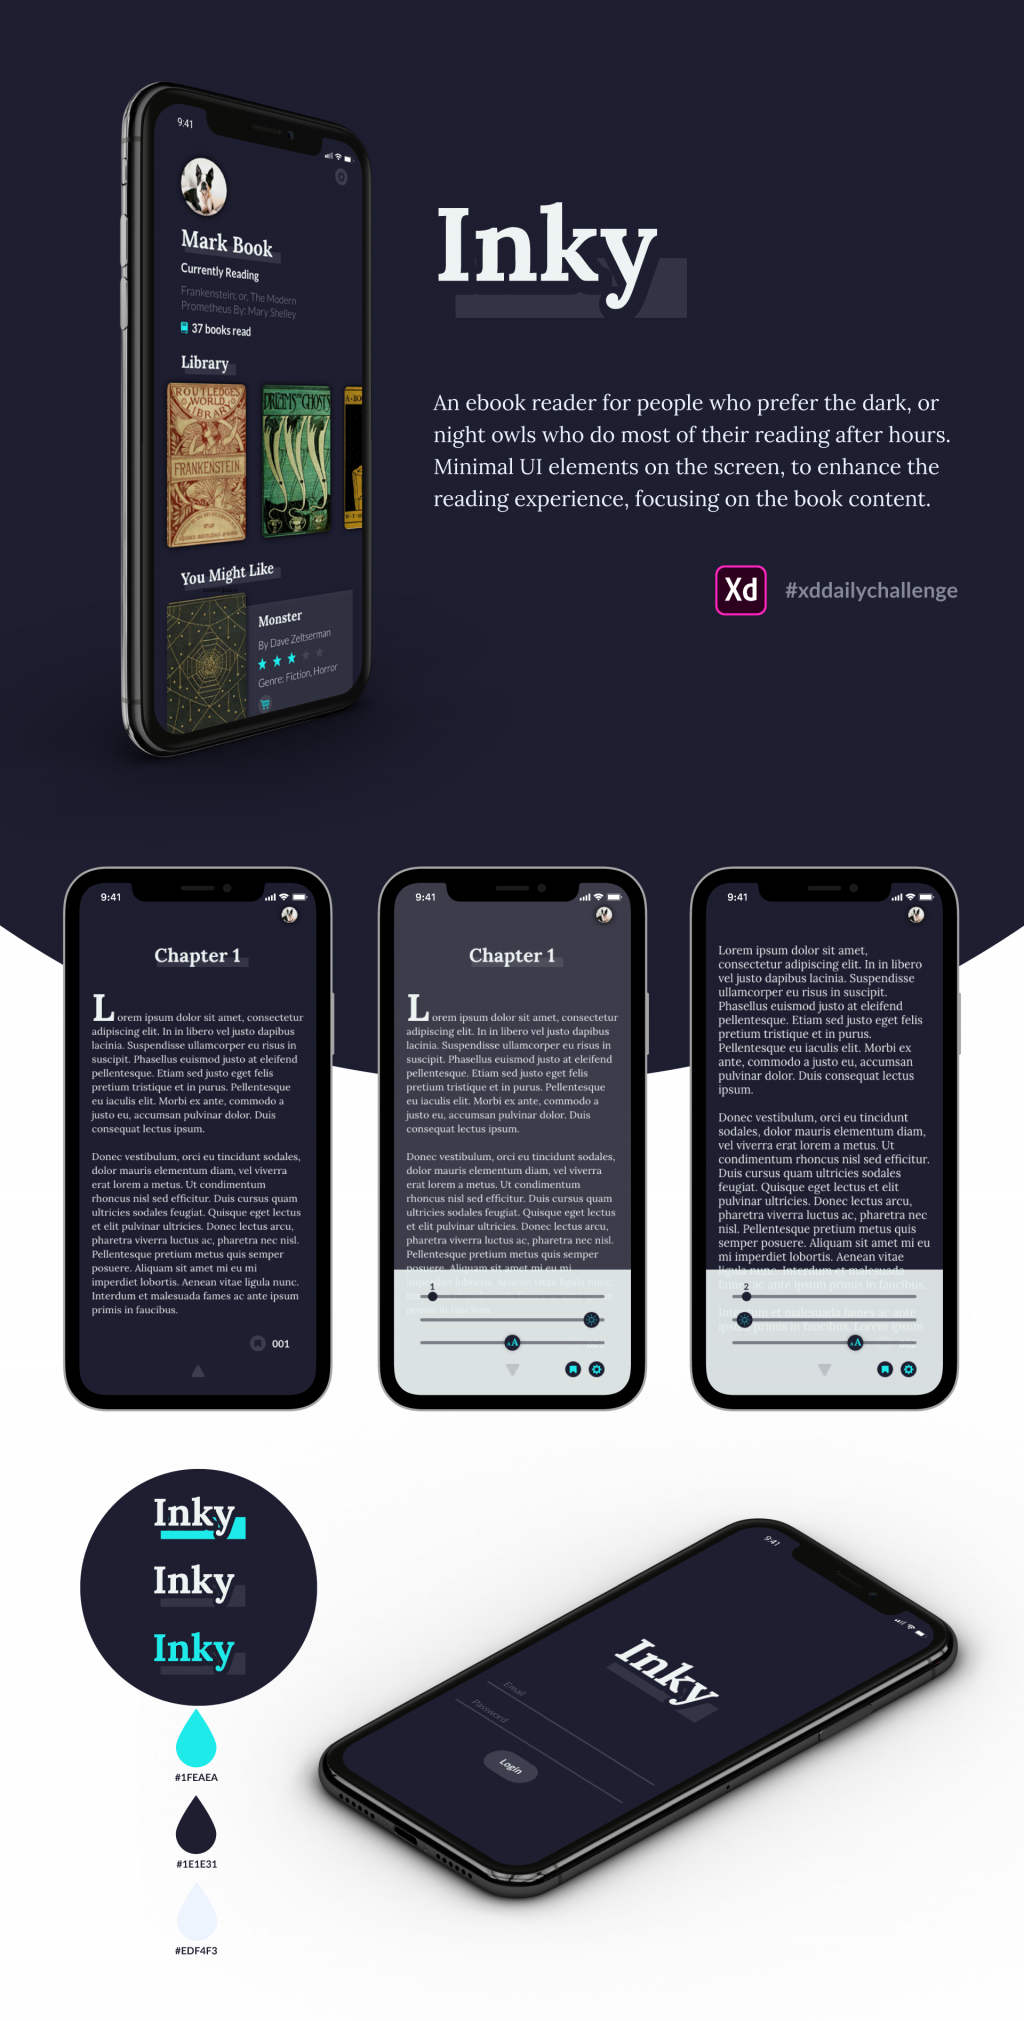 Mockup for a design for a e-reader